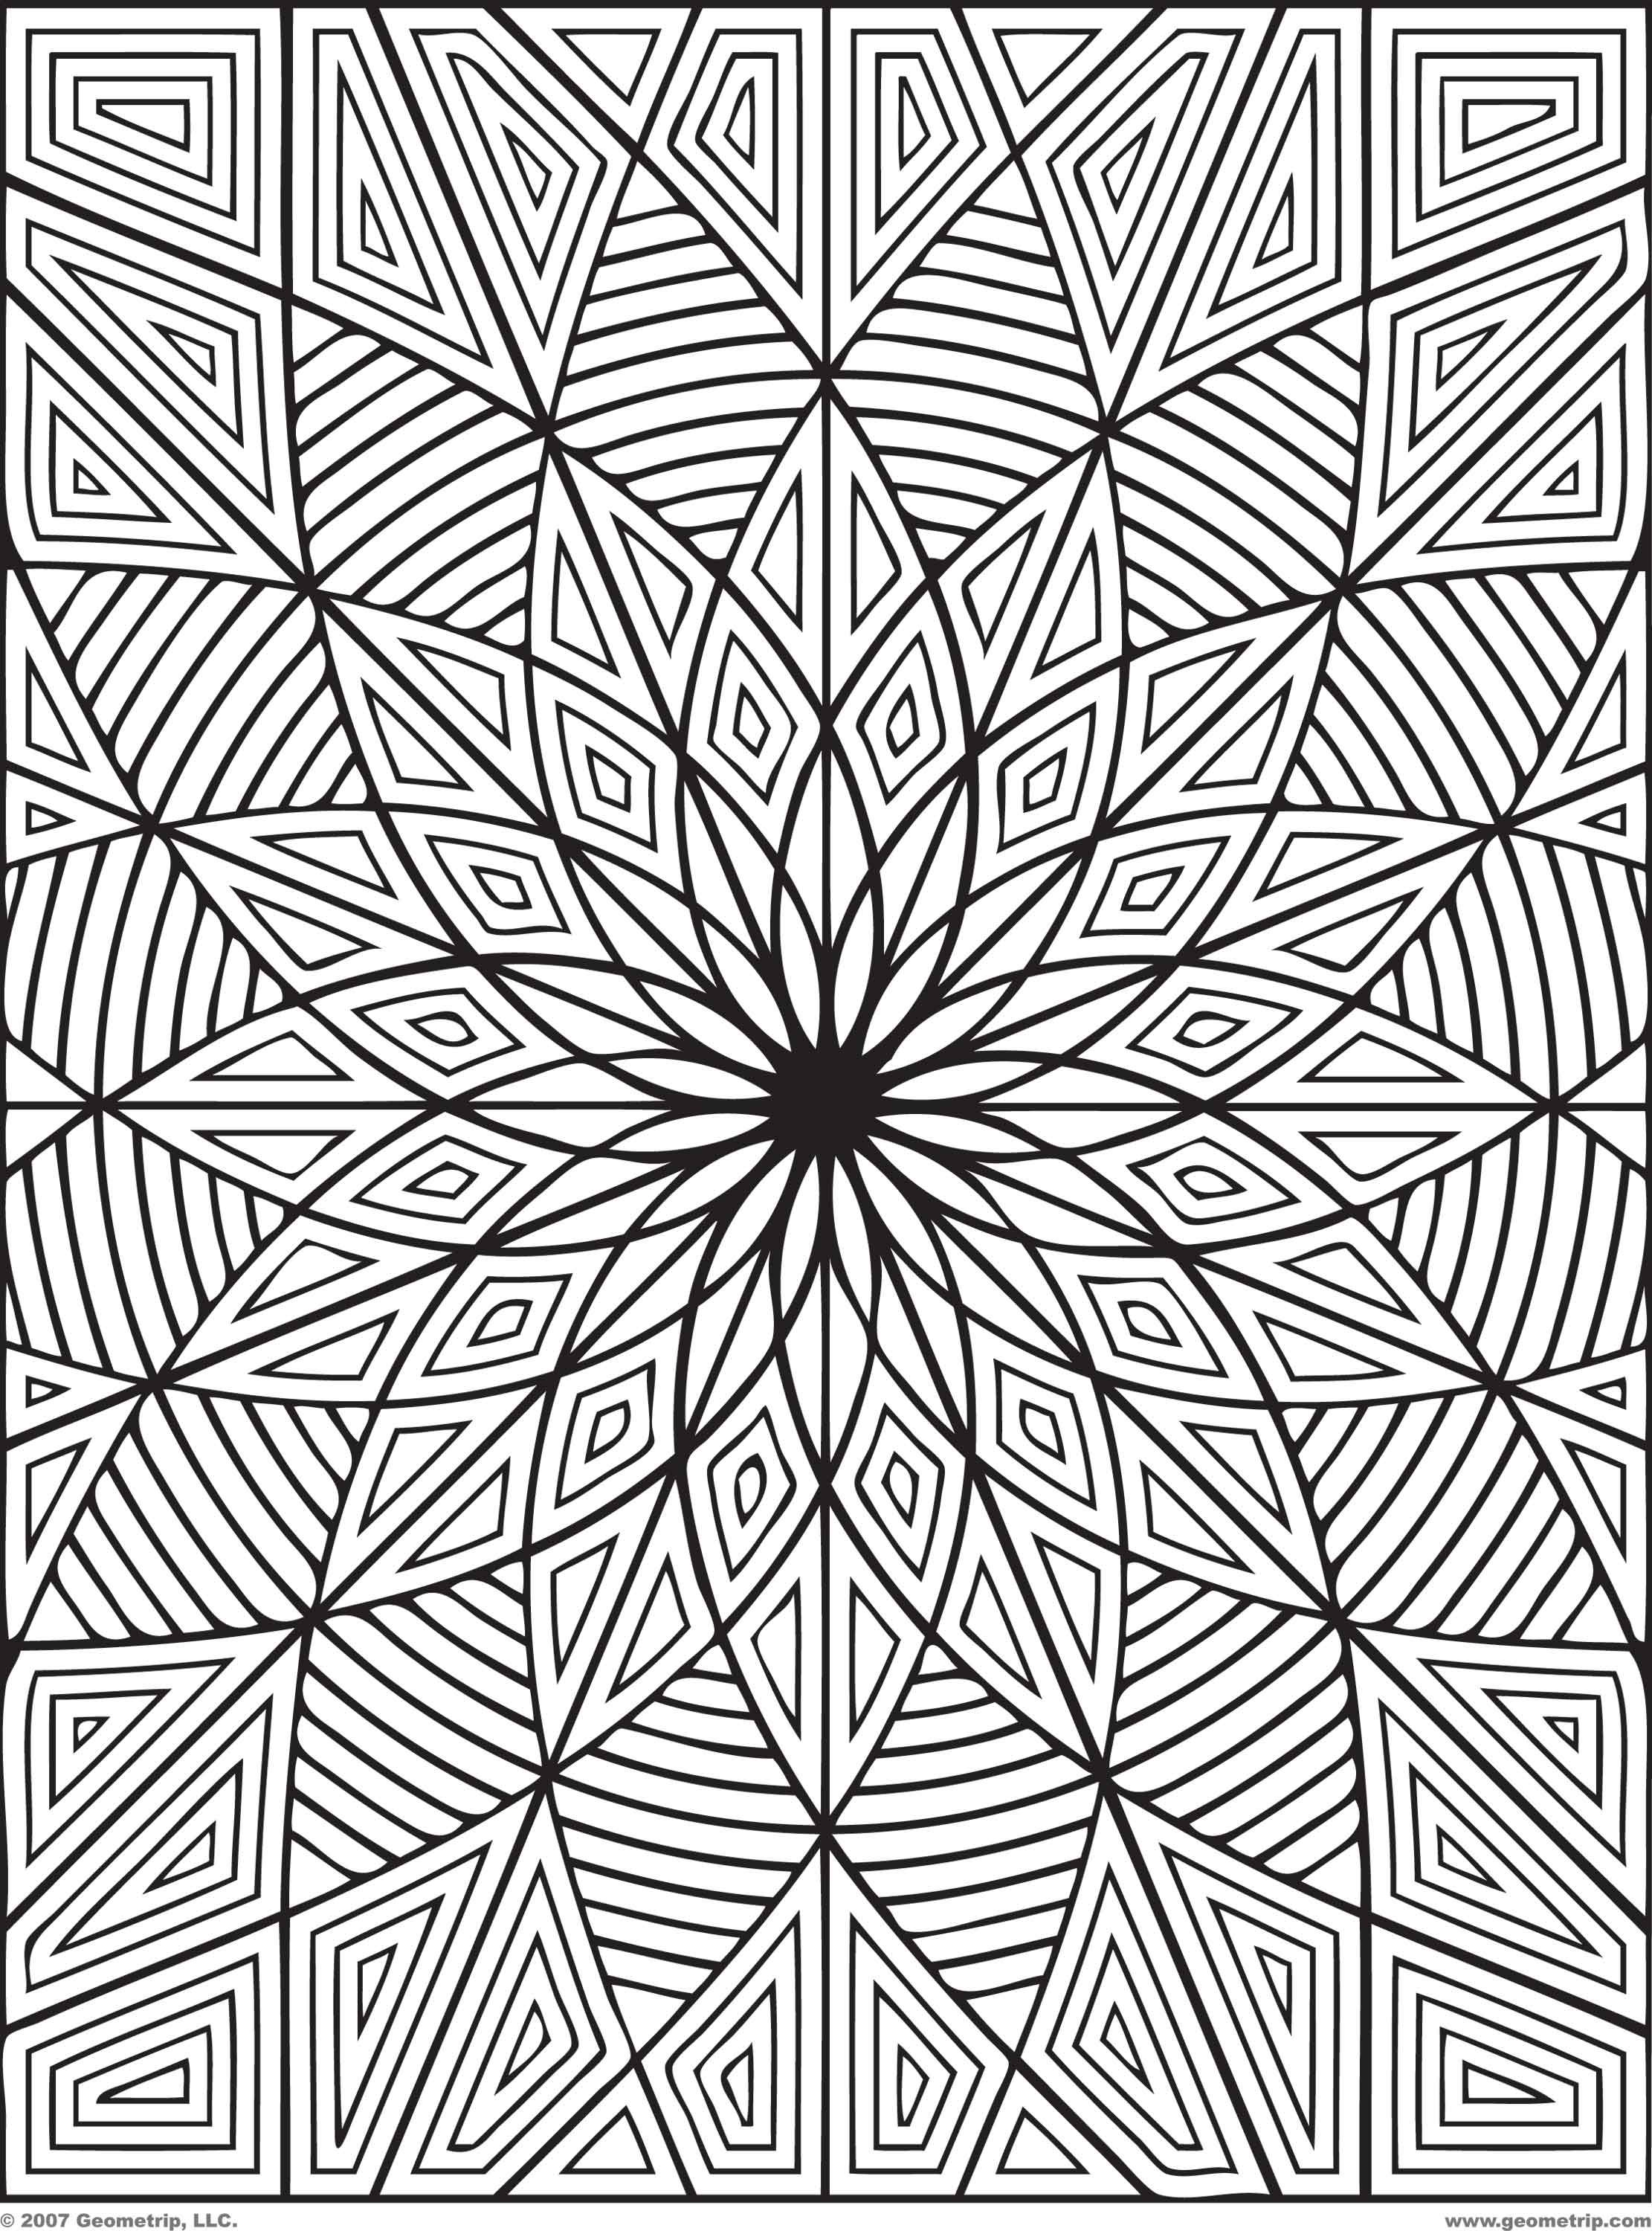 Lotus designs coloring book - Coloring Pages For Adults Previous Pinner Said Super Cool Grown Up Coloring Pages You Can Print